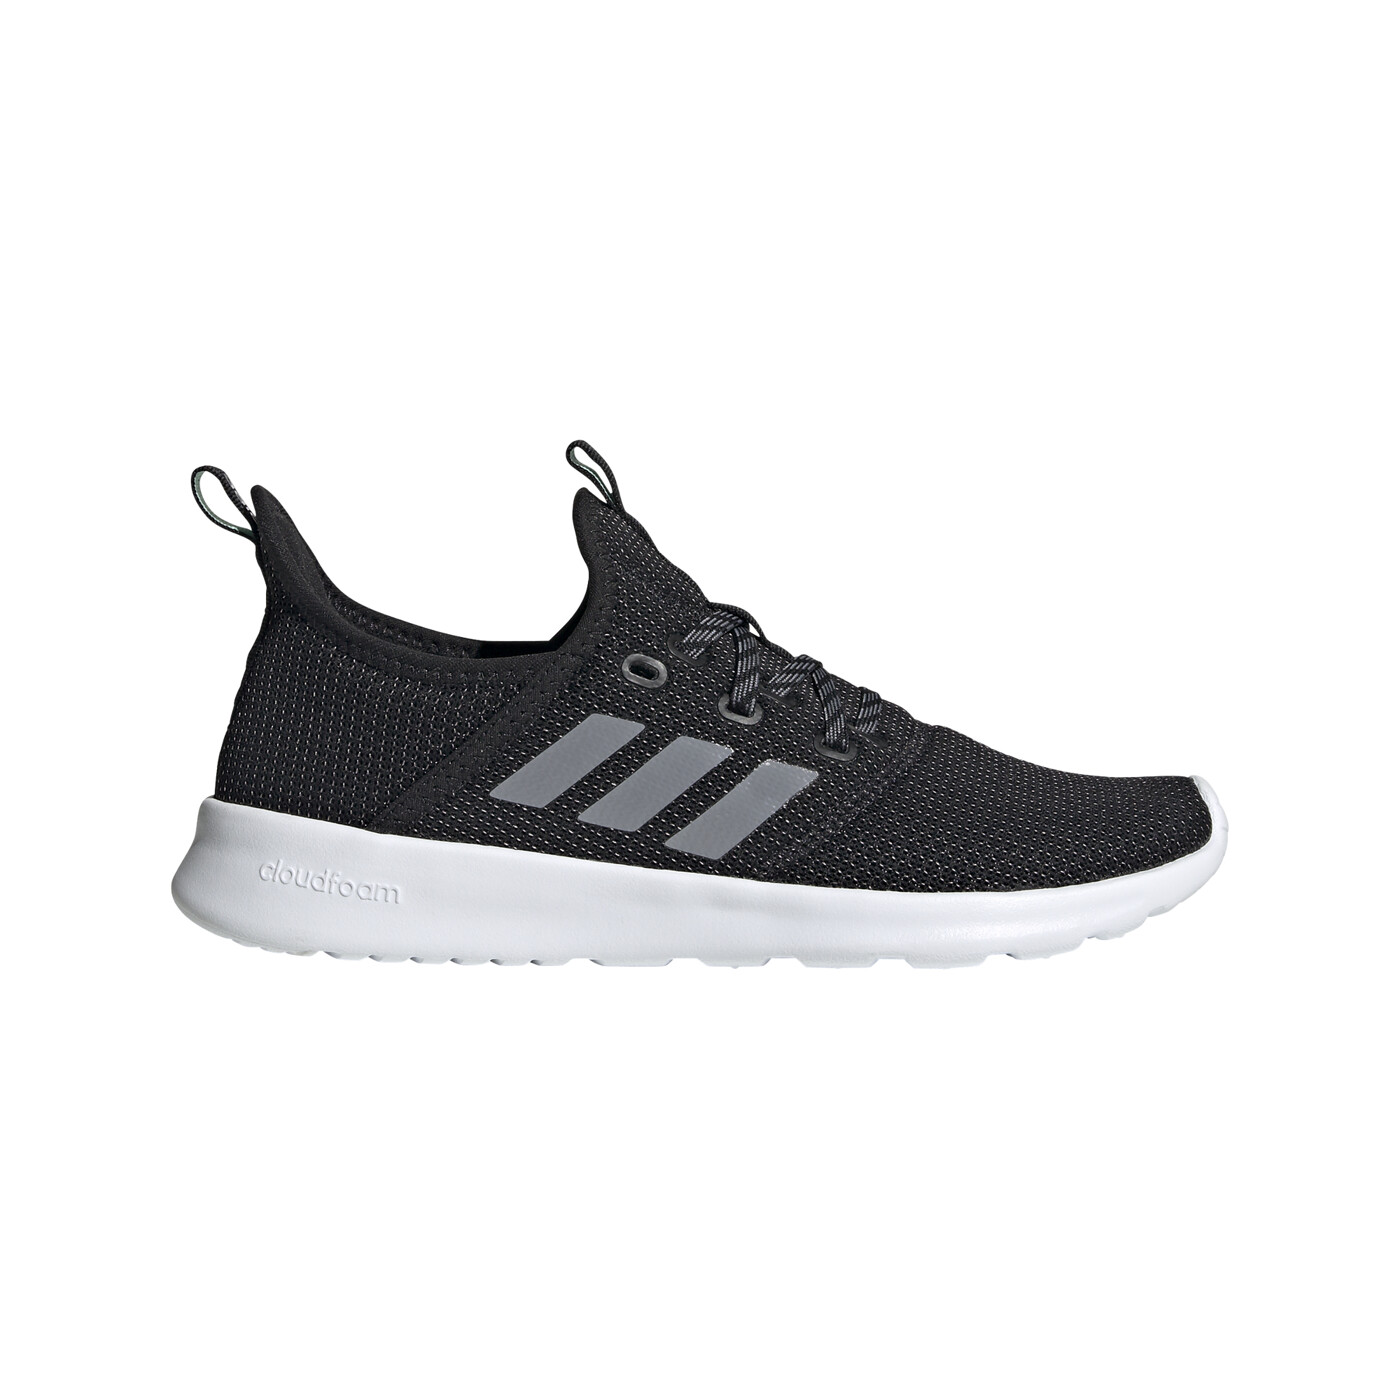 ADIDAS CLOUDFOAM PURE - Damen